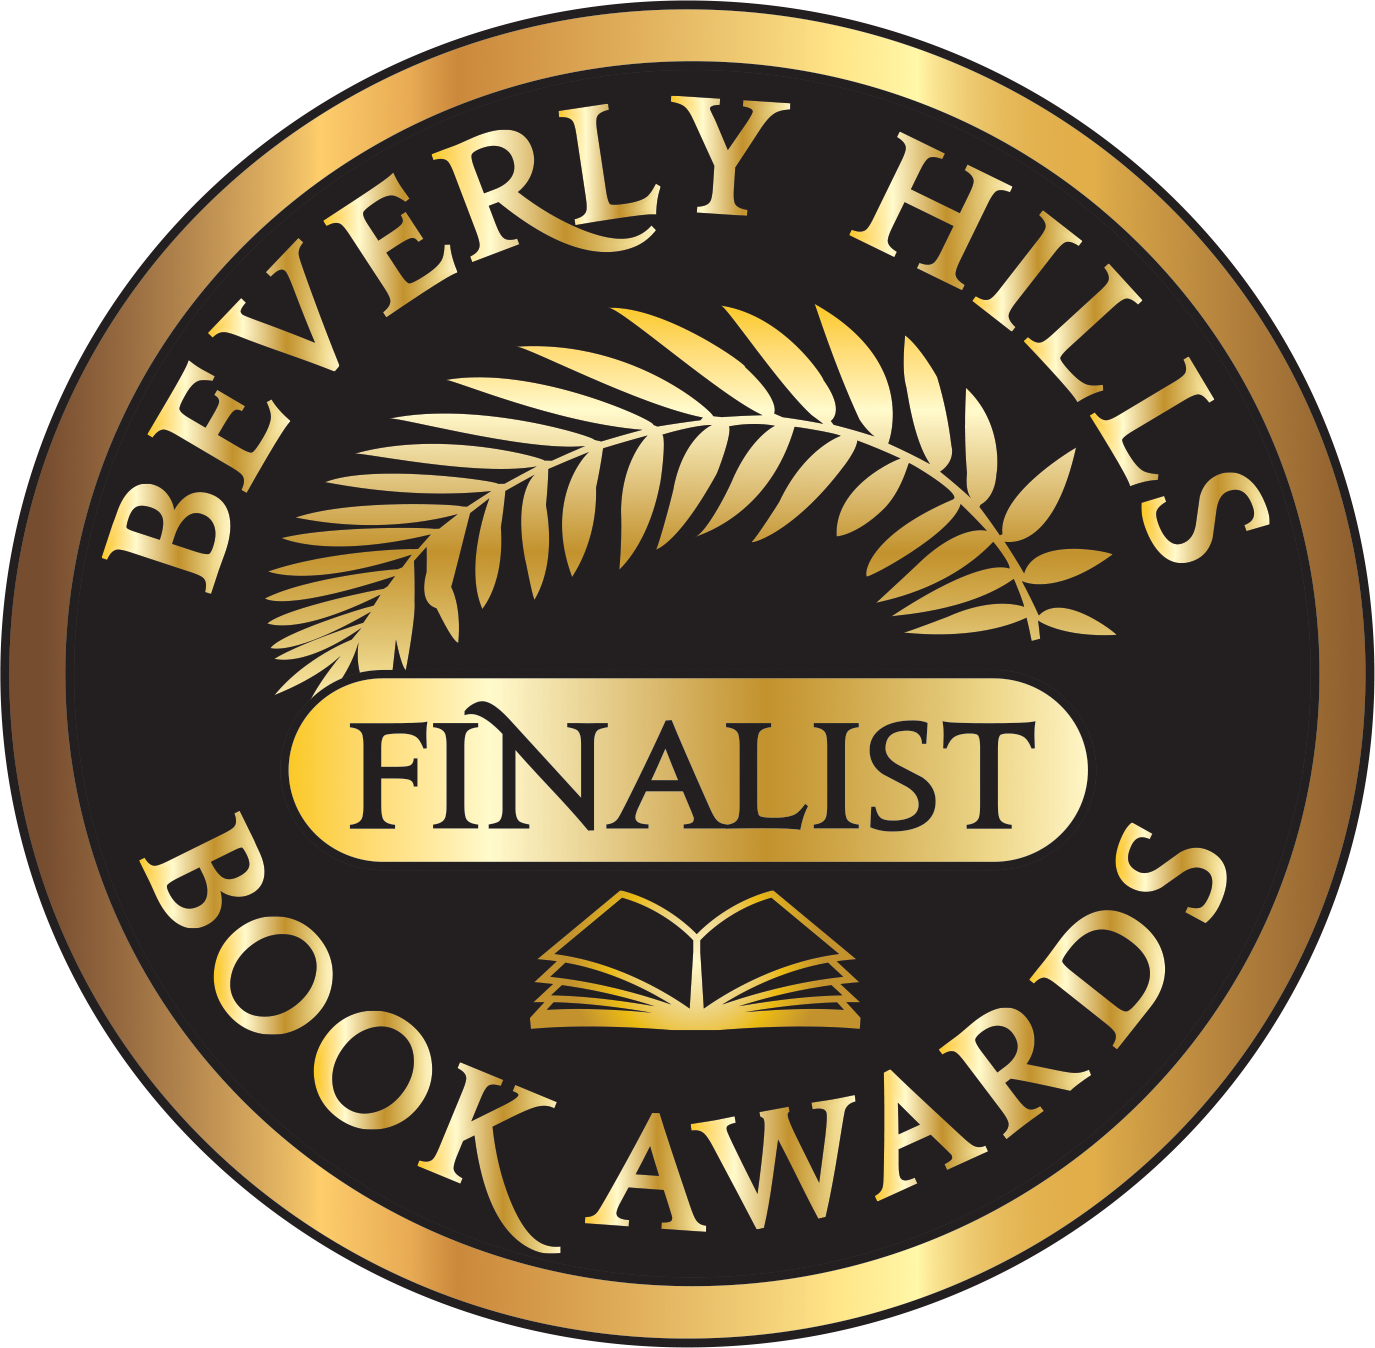 Deidre Madsen's Beverly Hills 2015 FINALIST AWARD-WINNING Happily Inner After - A Guide to Getting and Keeping Your Knight in Shining Amour, Balboa Press, a Division of Hay House Publishing